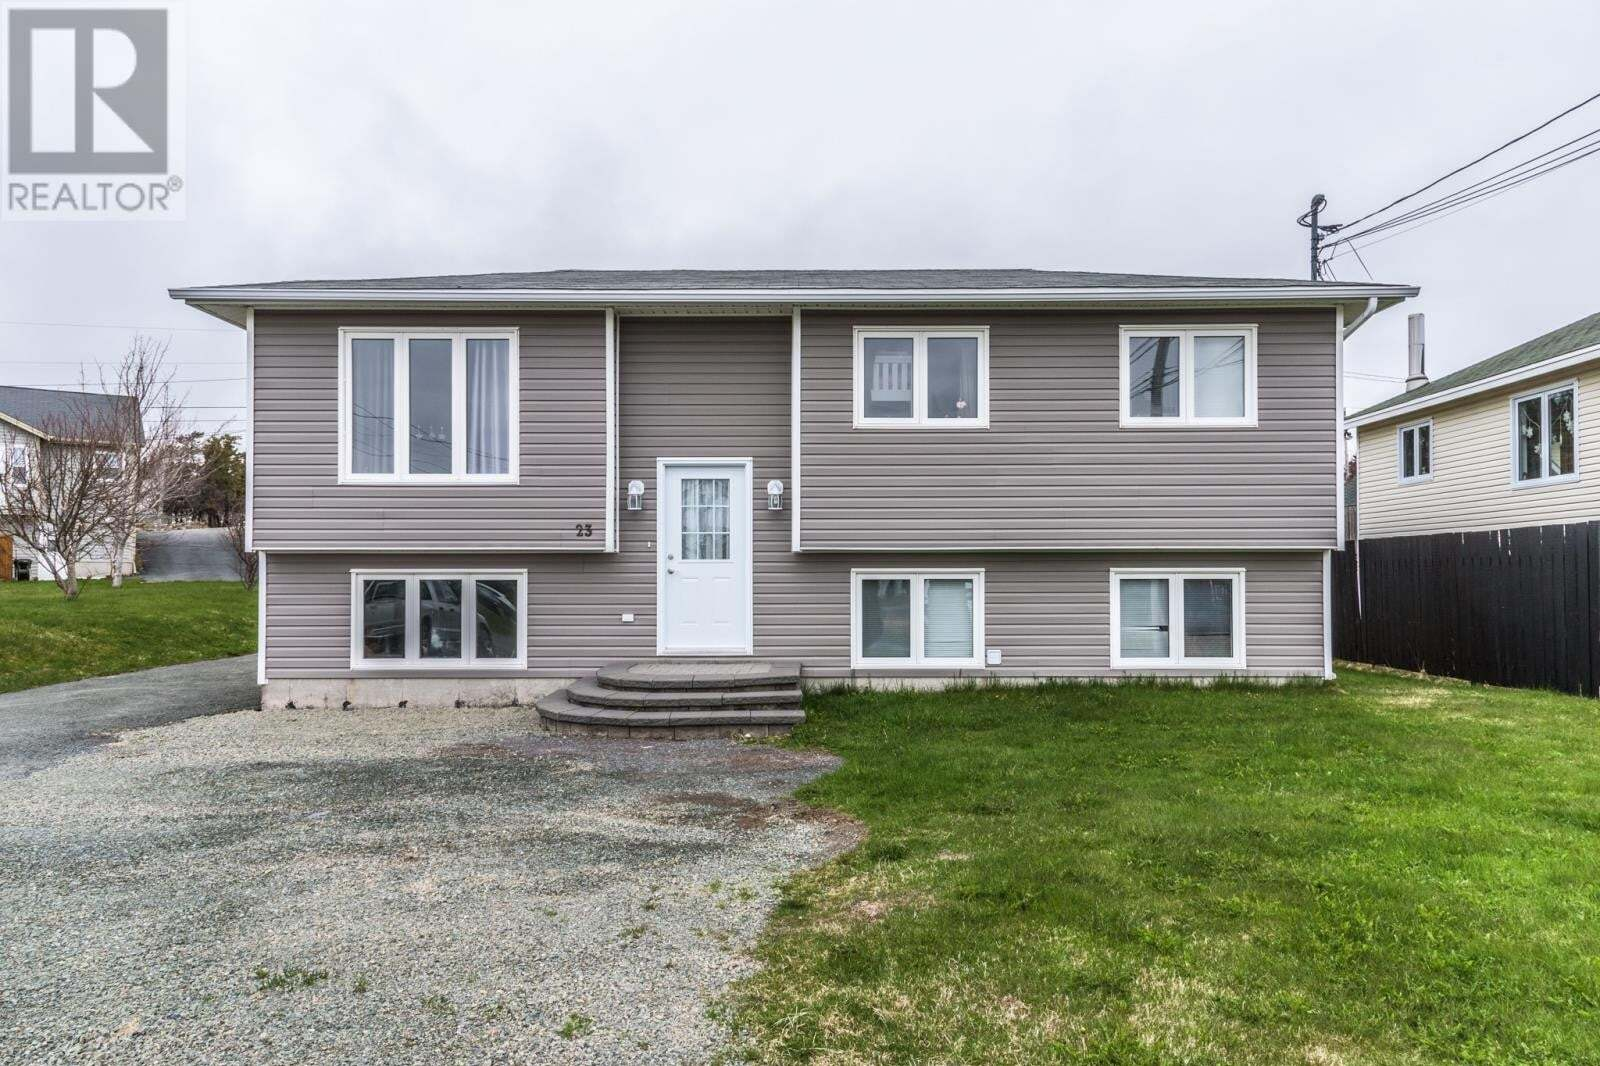 House for sale at 23 Reardons Ln Torbay Newfoundland - MLS: 1217077